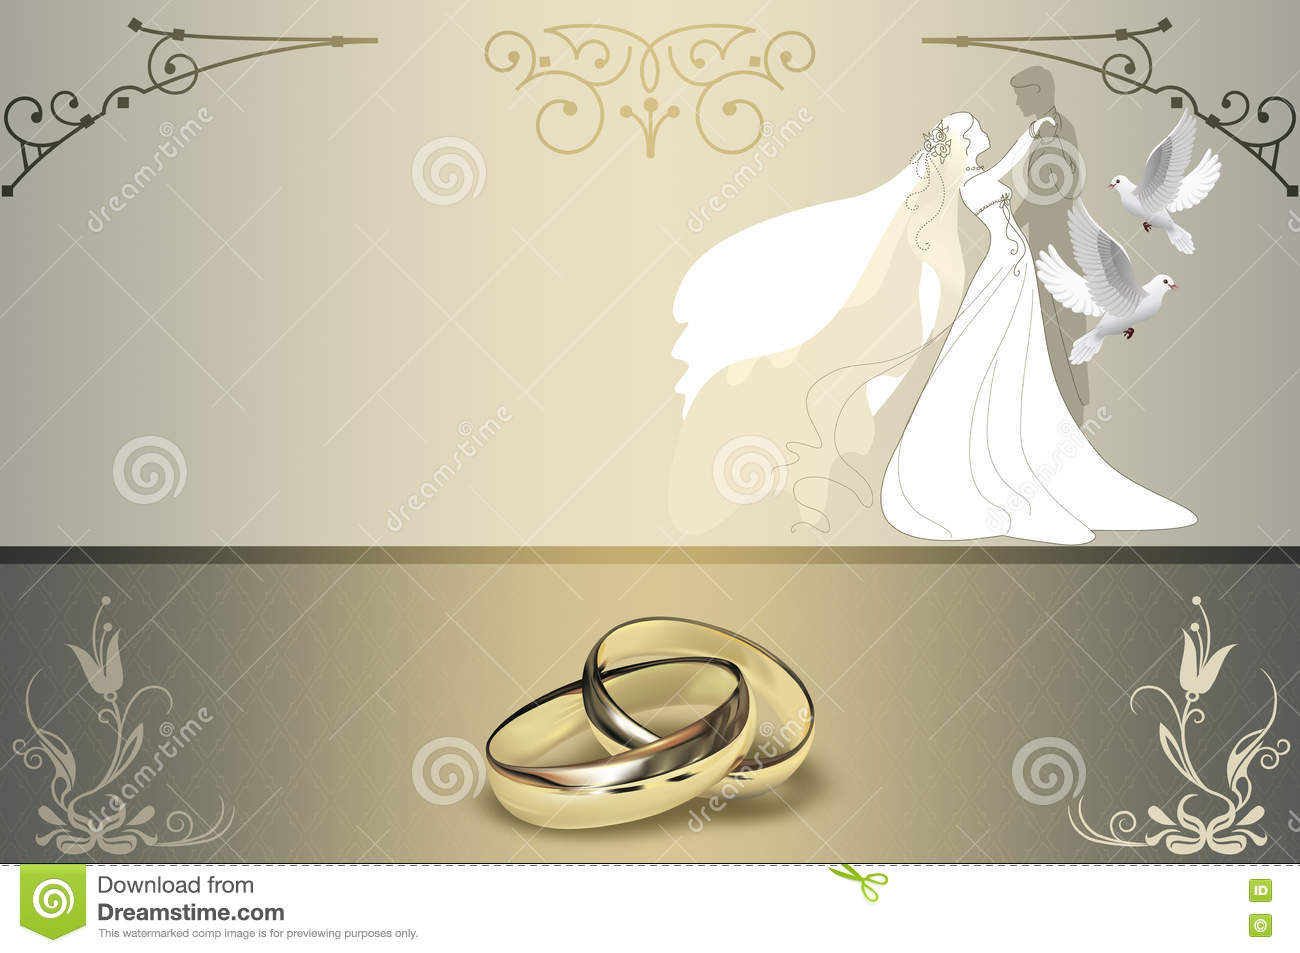 Wedding Invitation Card Design Stock Illustration Illustration of